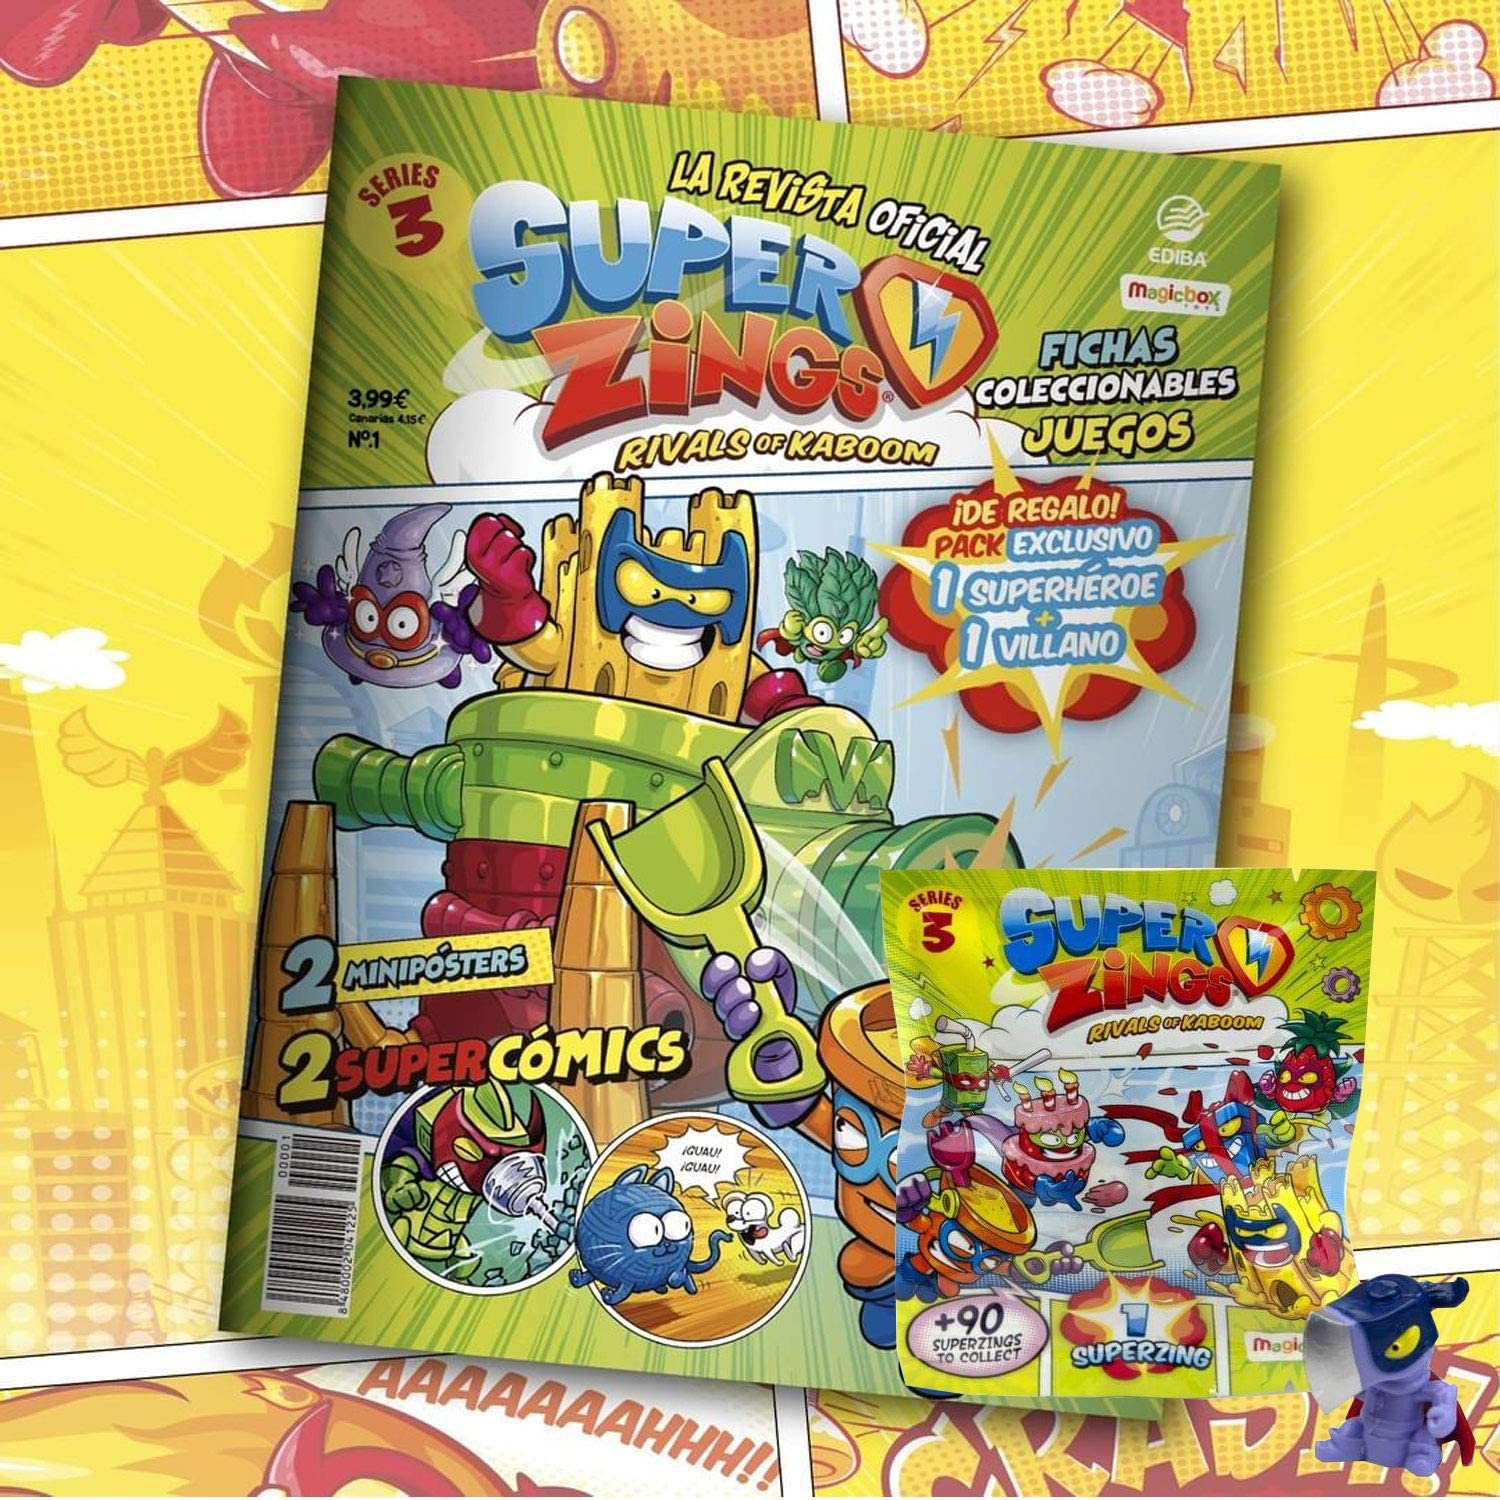 Superzings Rivals of Kaboom Serie 3 Revista Oficial Pack Exclusivo Superzings: Amazon.es: Juguetes y juegos